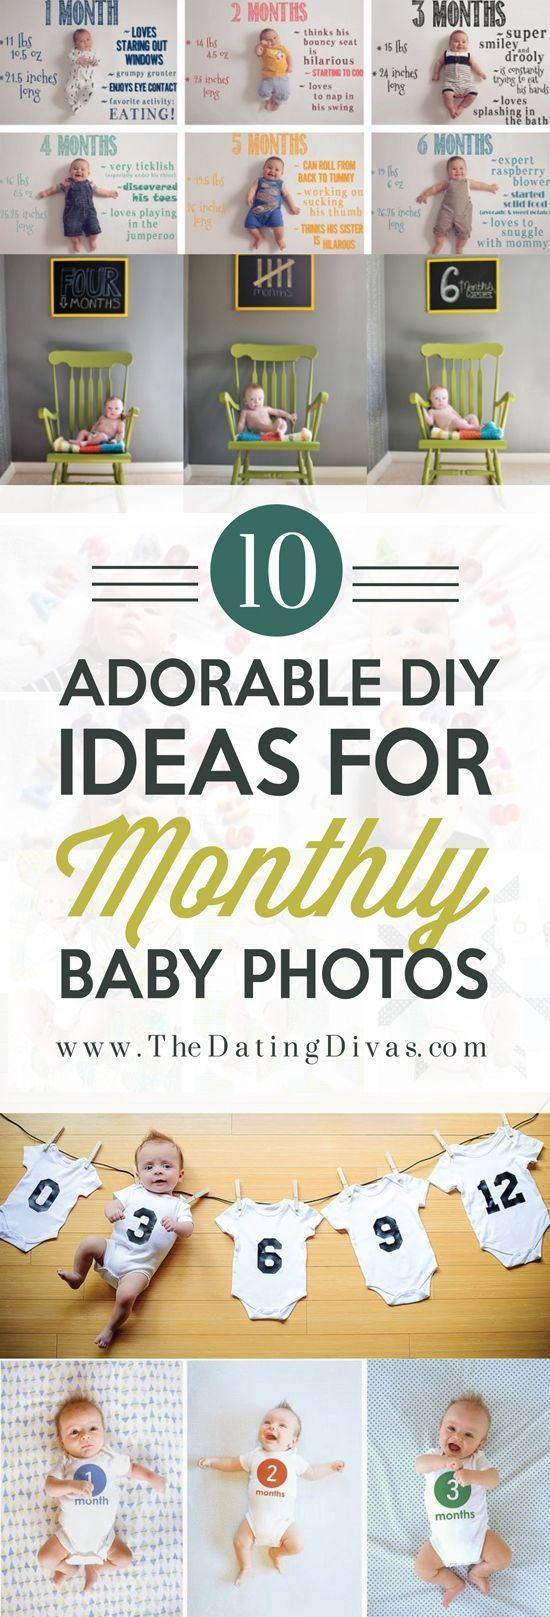 I LOVE these creative monthly baby pictures to document my newborn's growth! Such a great idea! Pinning for later! www.TheDatingDiva...